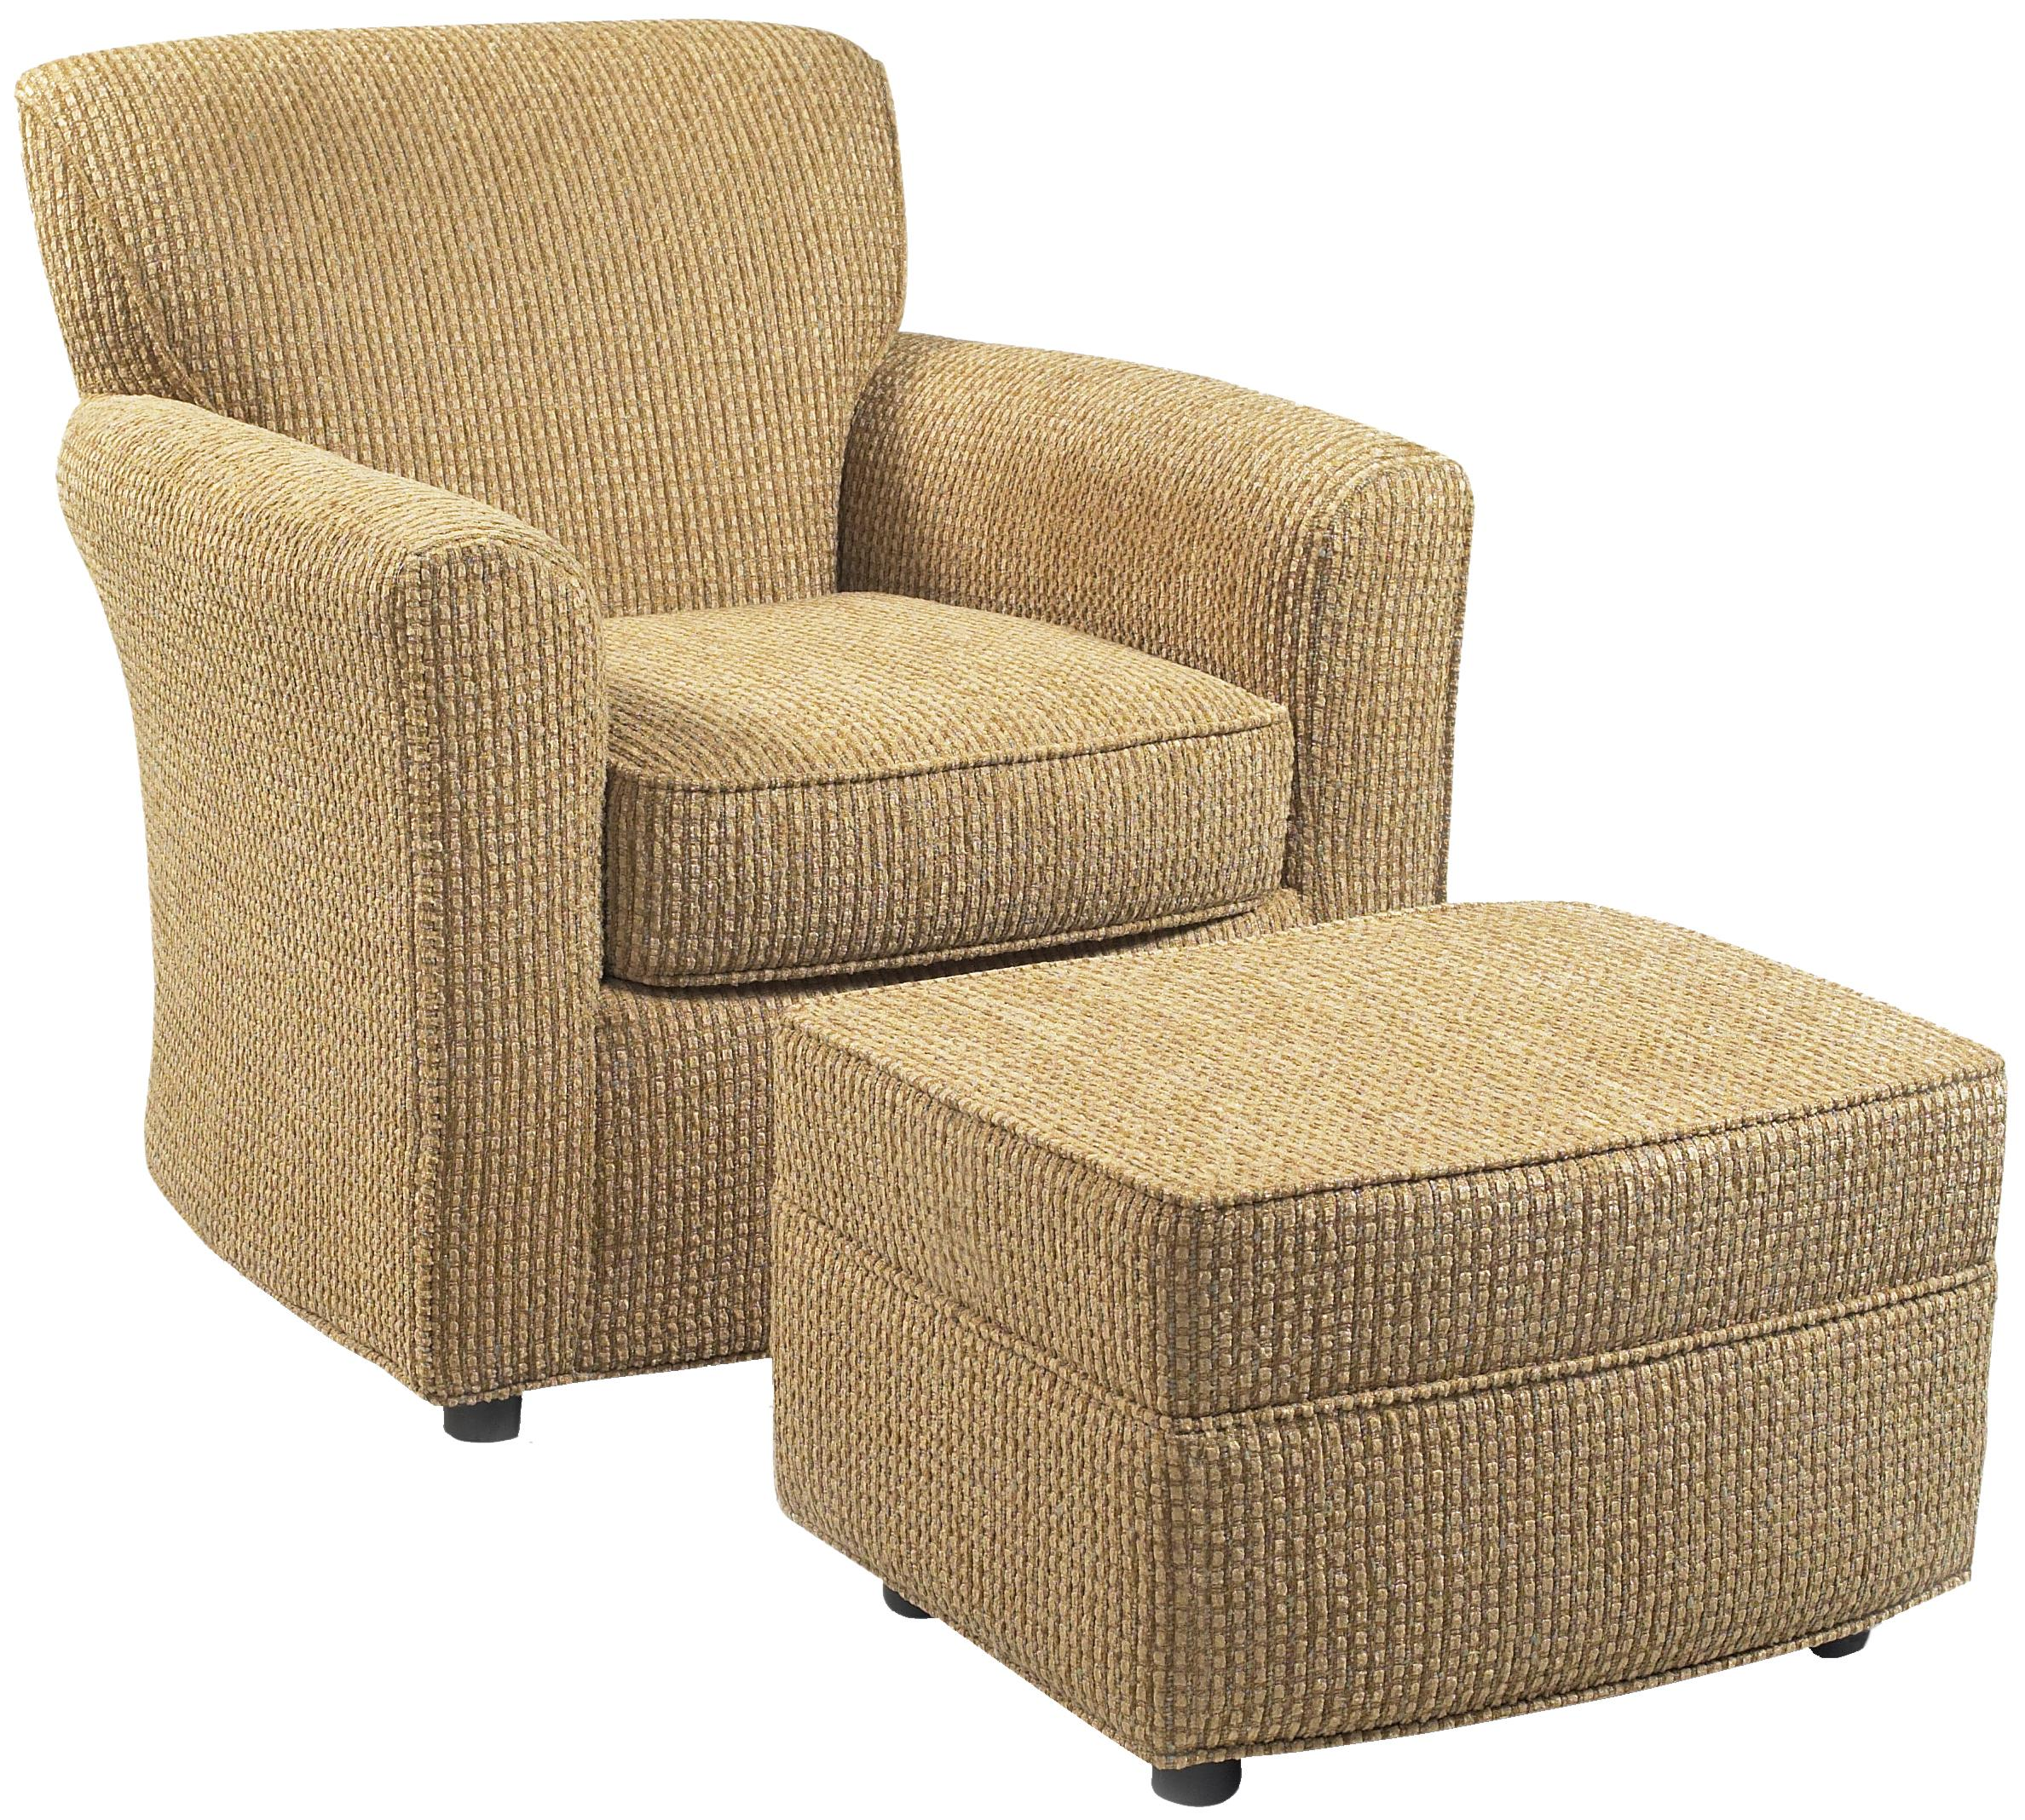 Lancer Stand Alone Chairs 7 Contemporary Upholstered Chair Lapeer Furniture Mattress Center